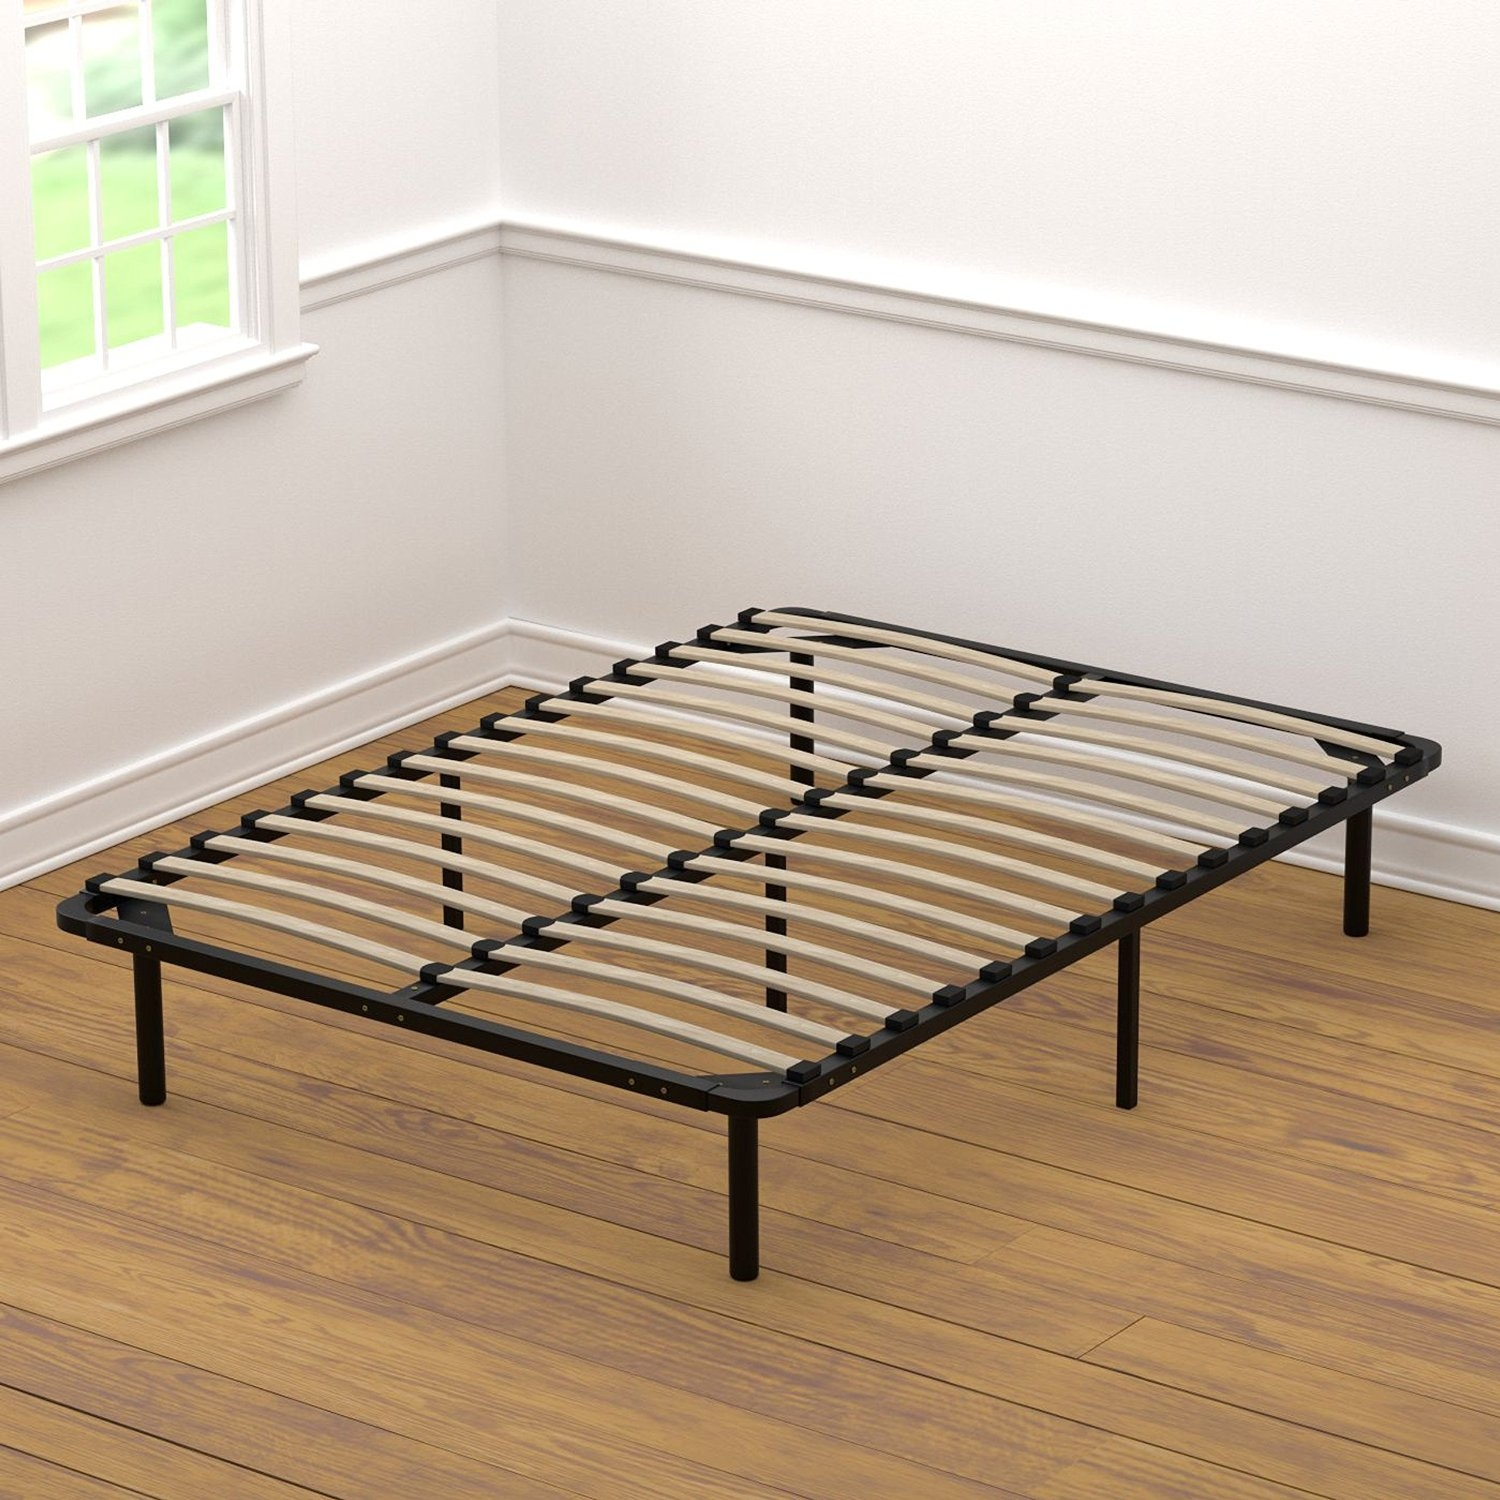 Wood Slat Bed Frame Full